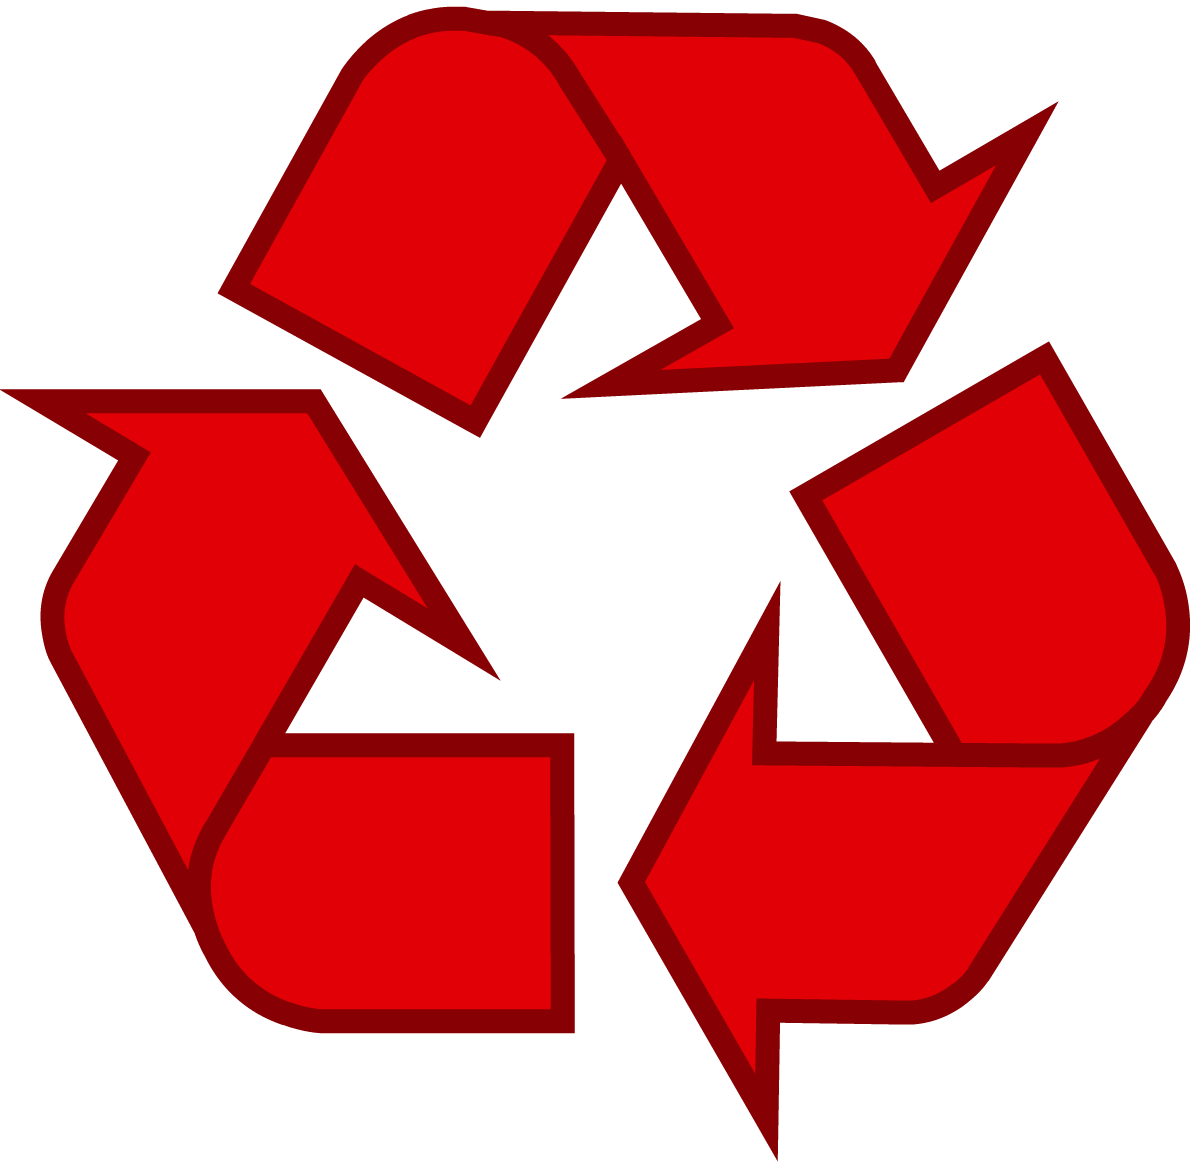 Pictures Of Recycling Symbols Free Download Best Pictures Of